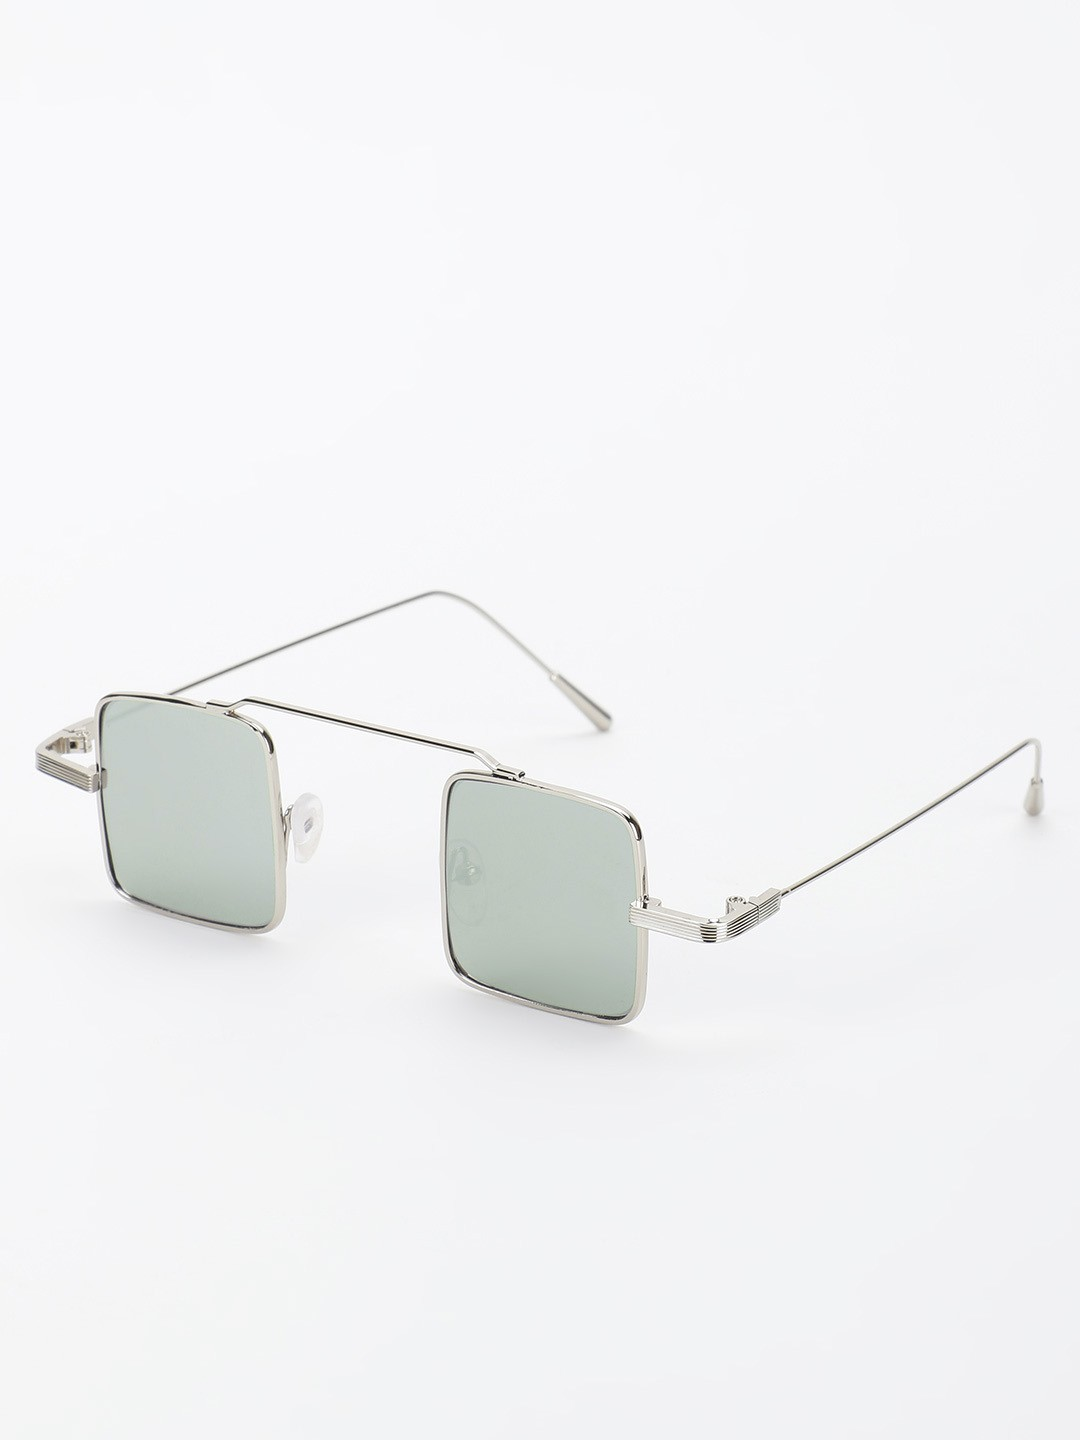 Style Fiesta Grey Square Tinted Lens Retro Sunglasses 1